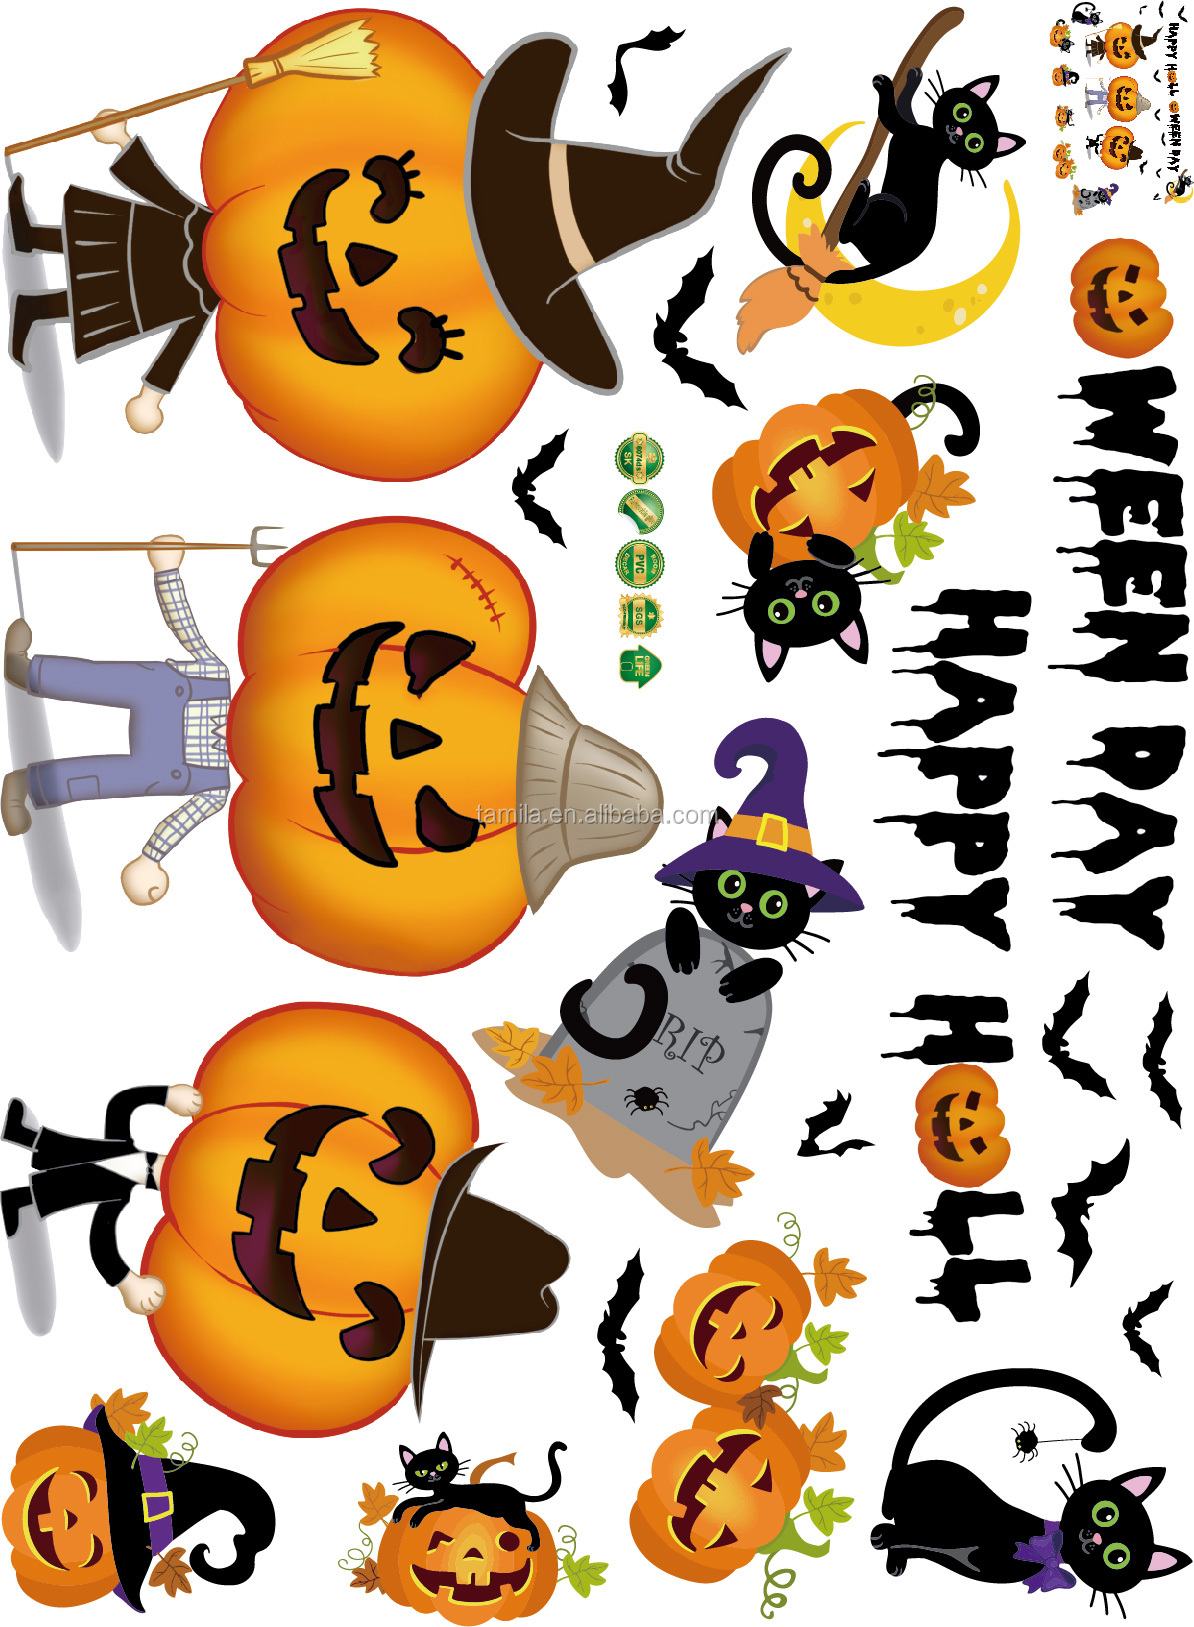 Halloween Pumpkin Design Self-adhesive Kids Wall Decoration PVC Sticker